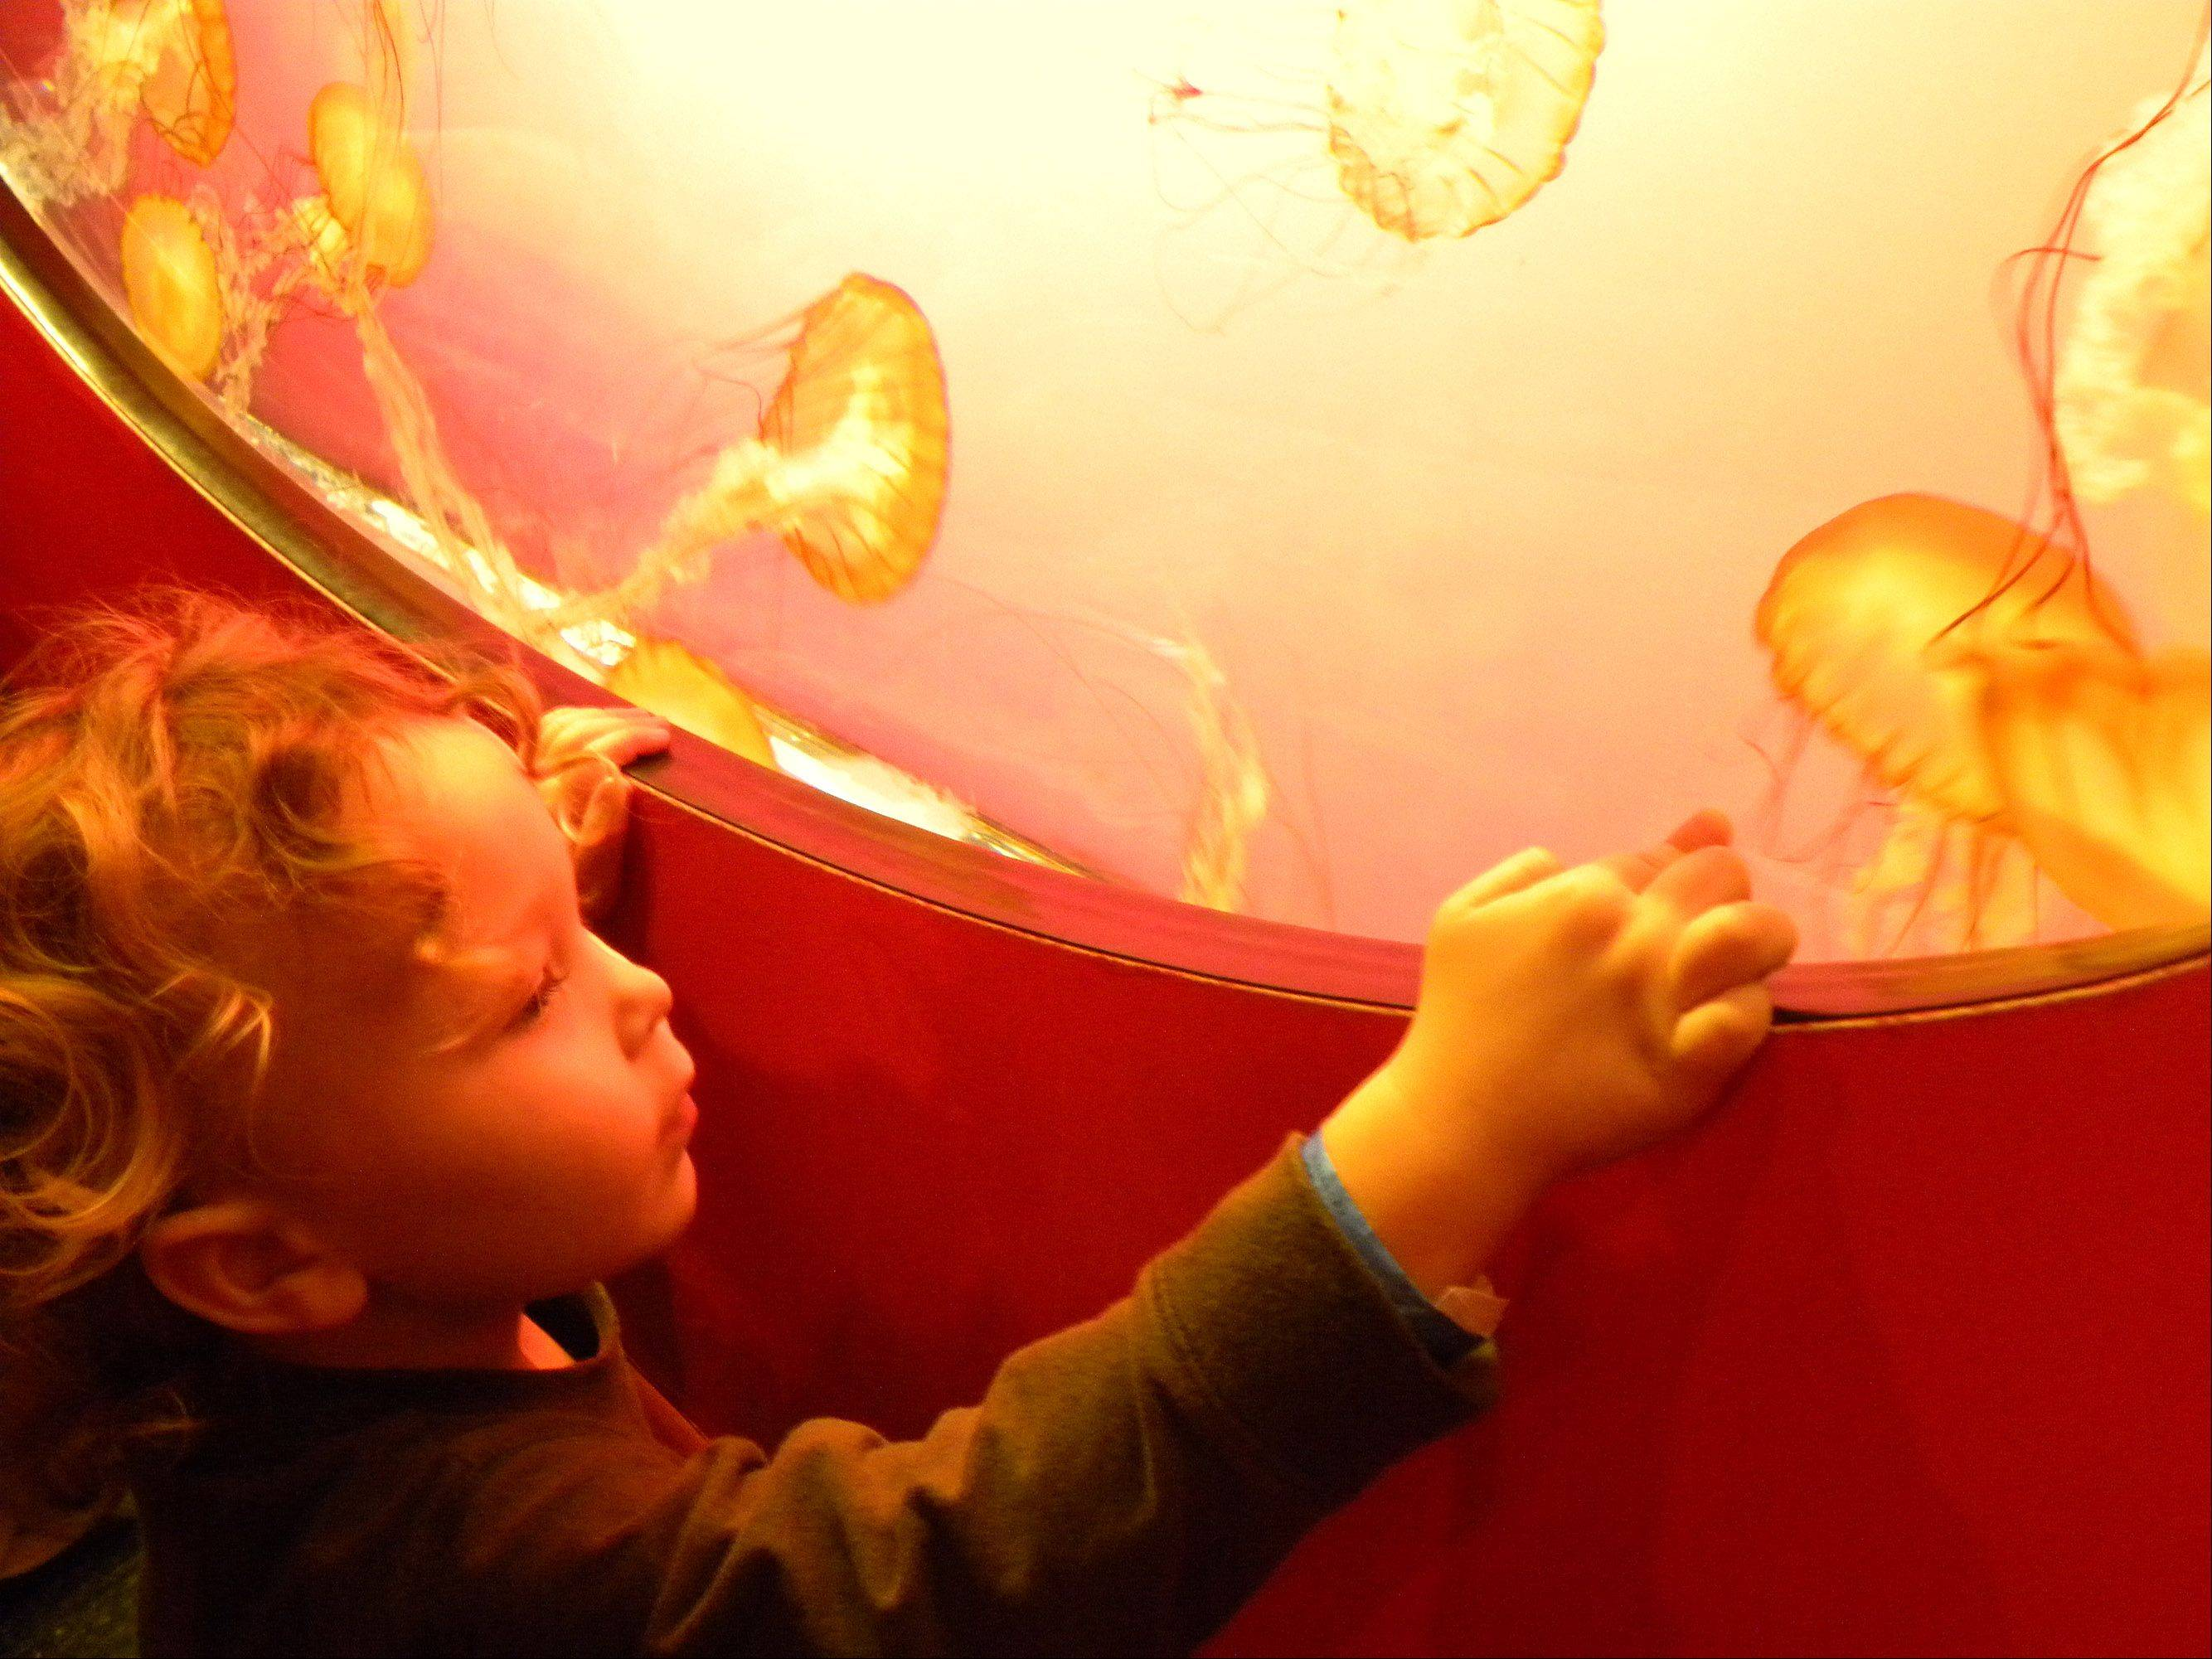 This is my nephew, Nathan, at the Shedd Aquarium on December 15th. We went to see the jelly fish.